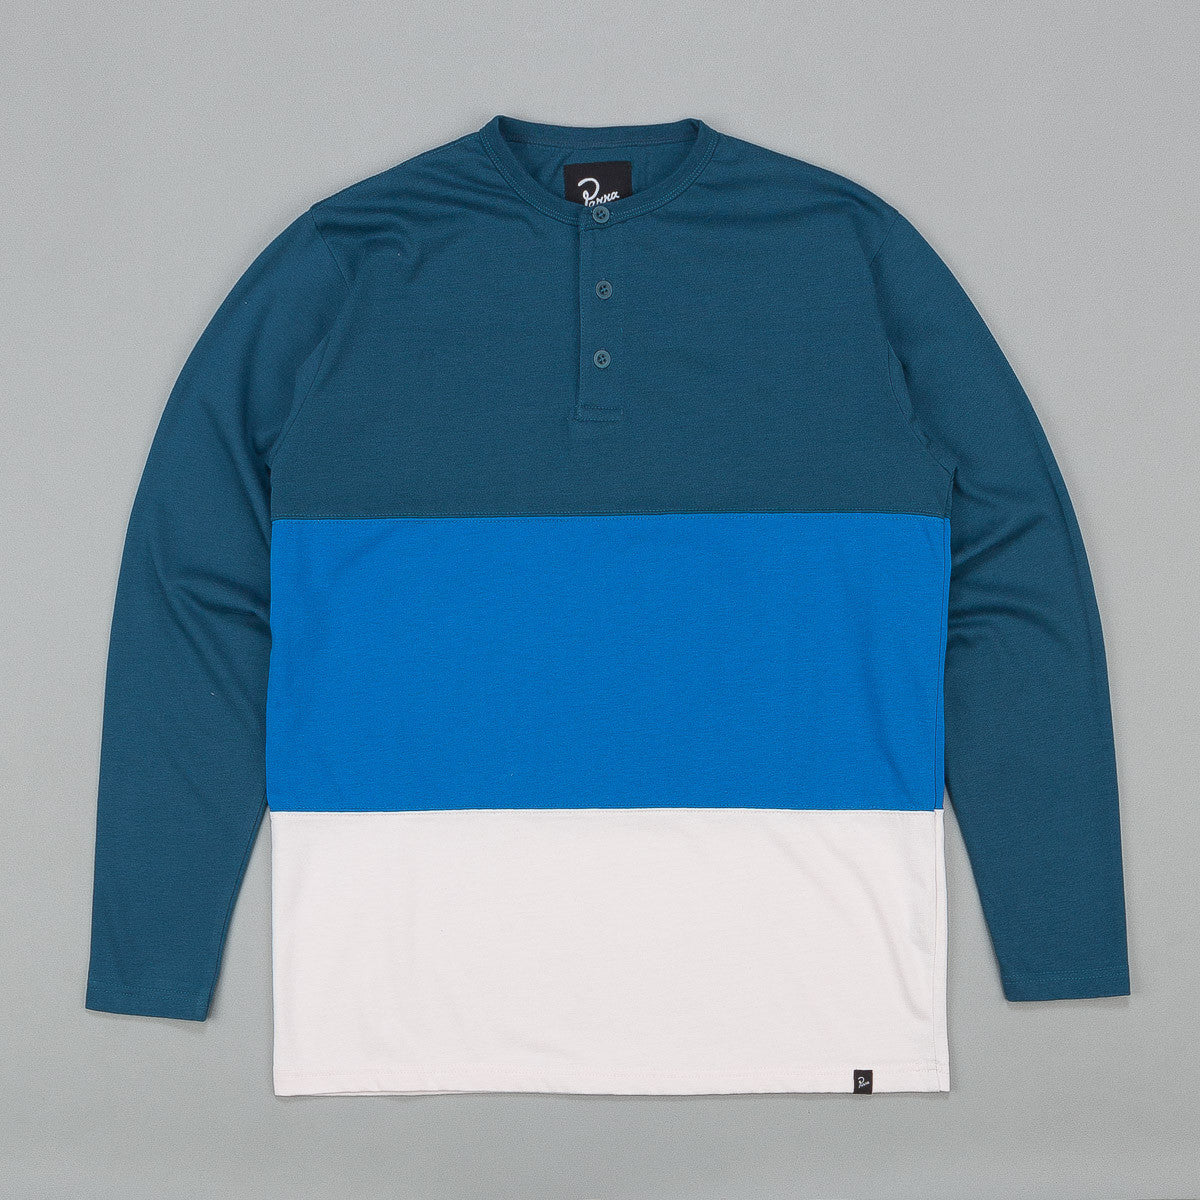 Parra Henley Long Sleeve T-Shirt